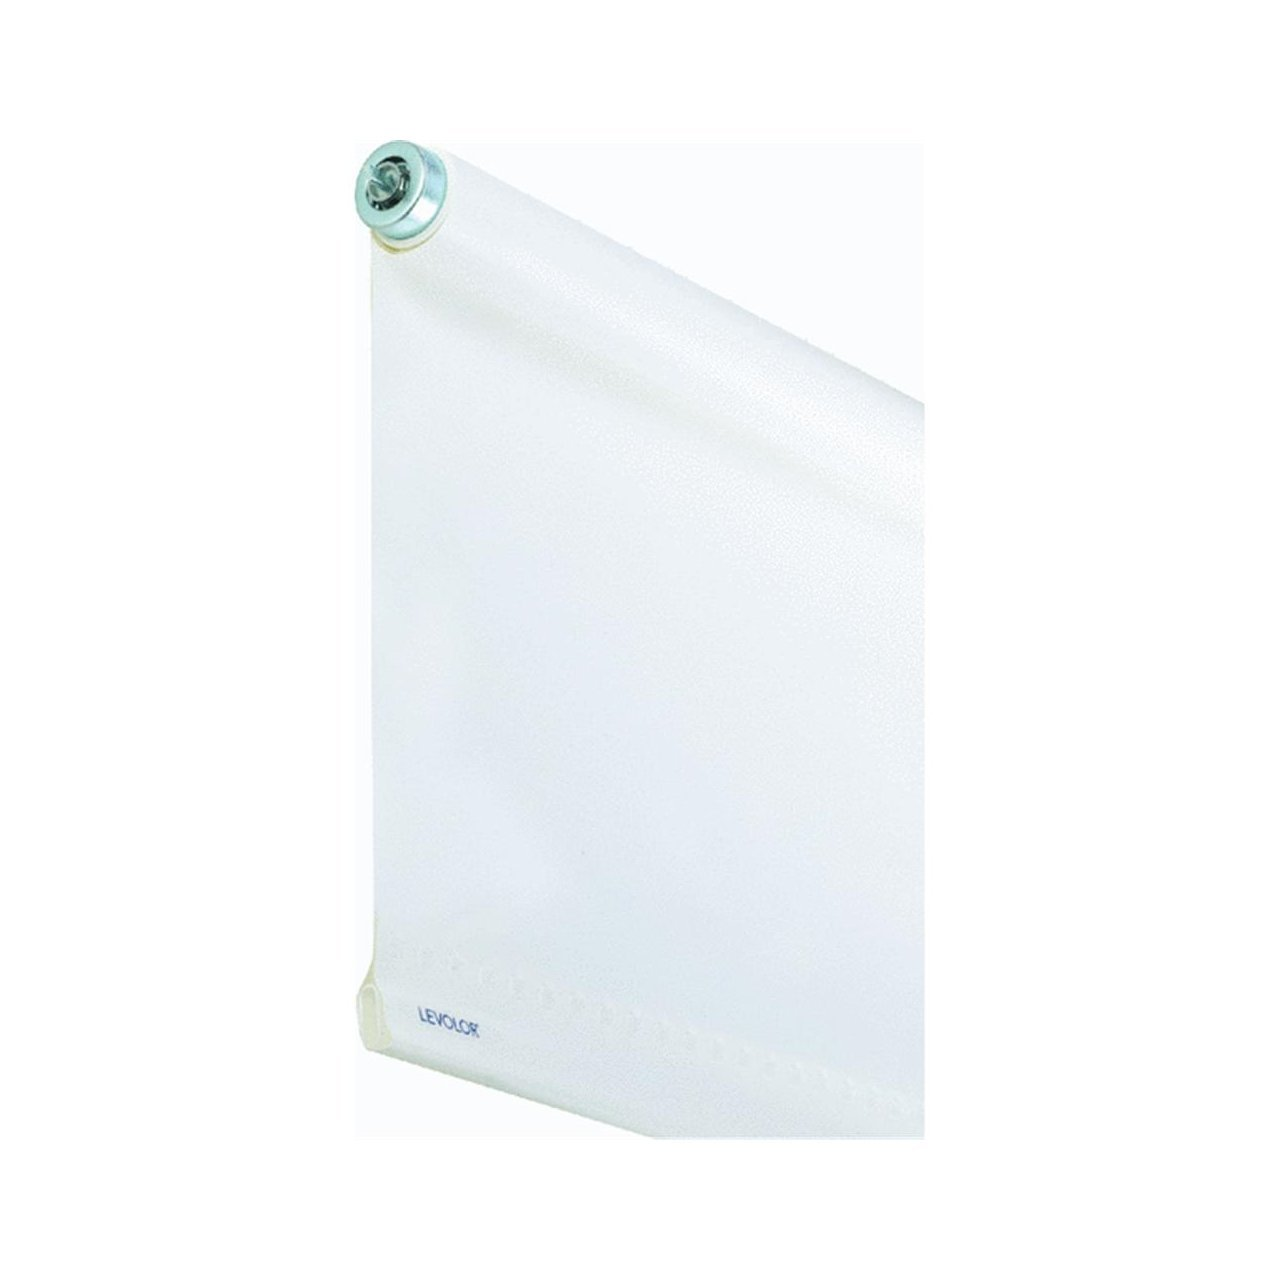 NEWELL RUBBERMAID HRSMWD3706601D Adjustable Wind Shade, White